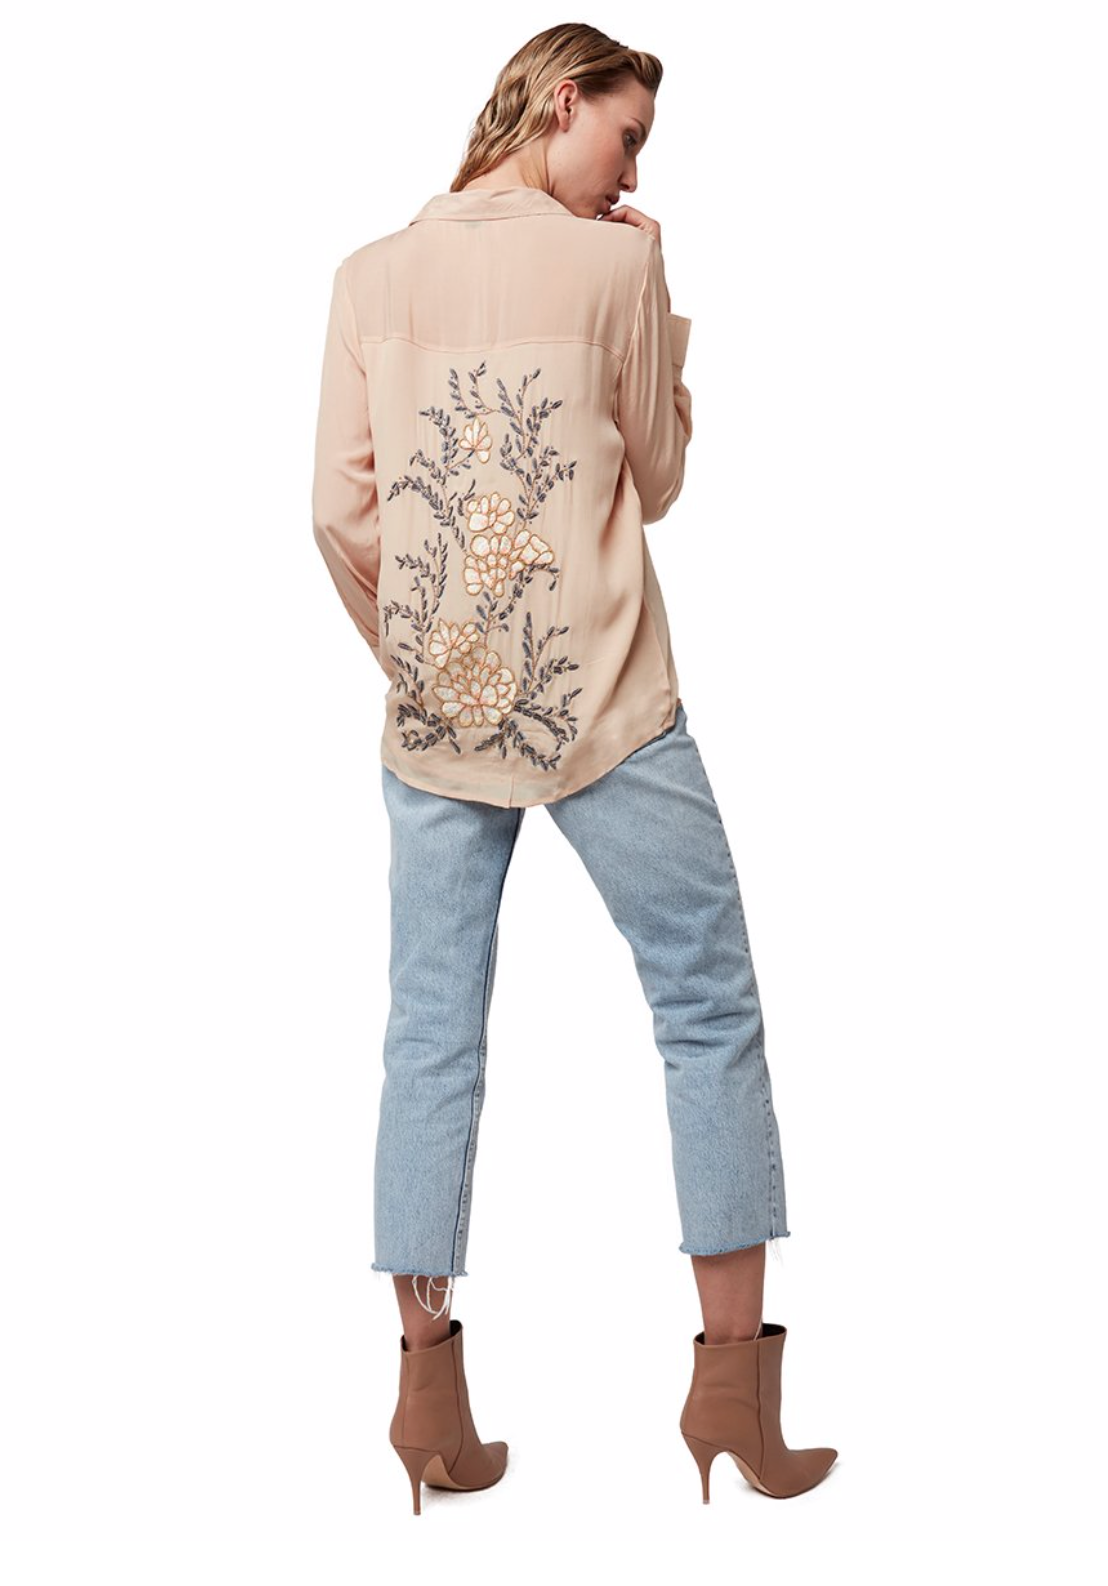 (New) Lotus Flower Blouse